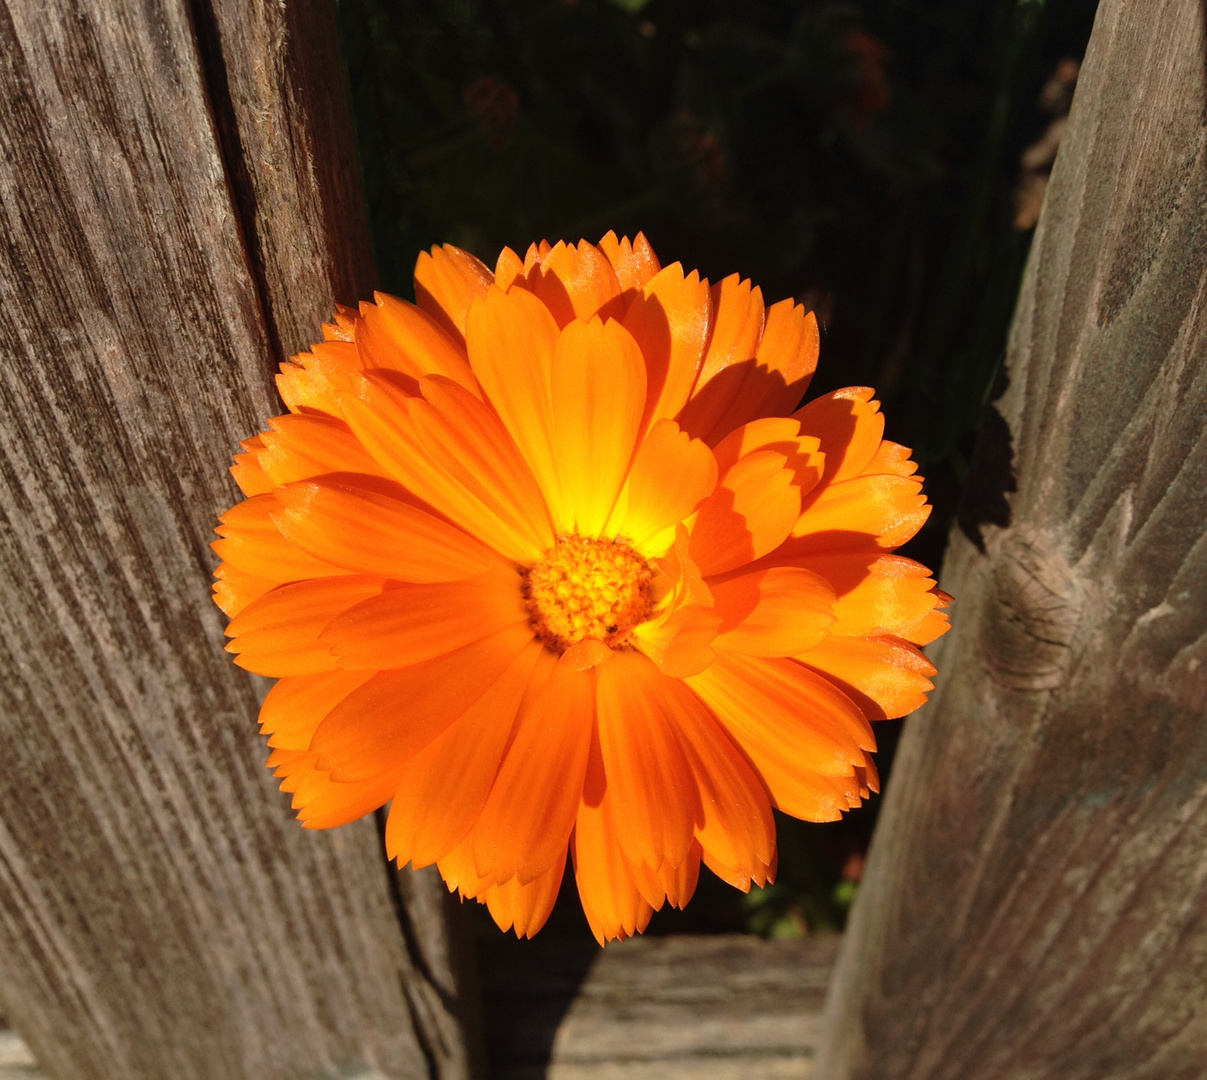 Between the picket fence